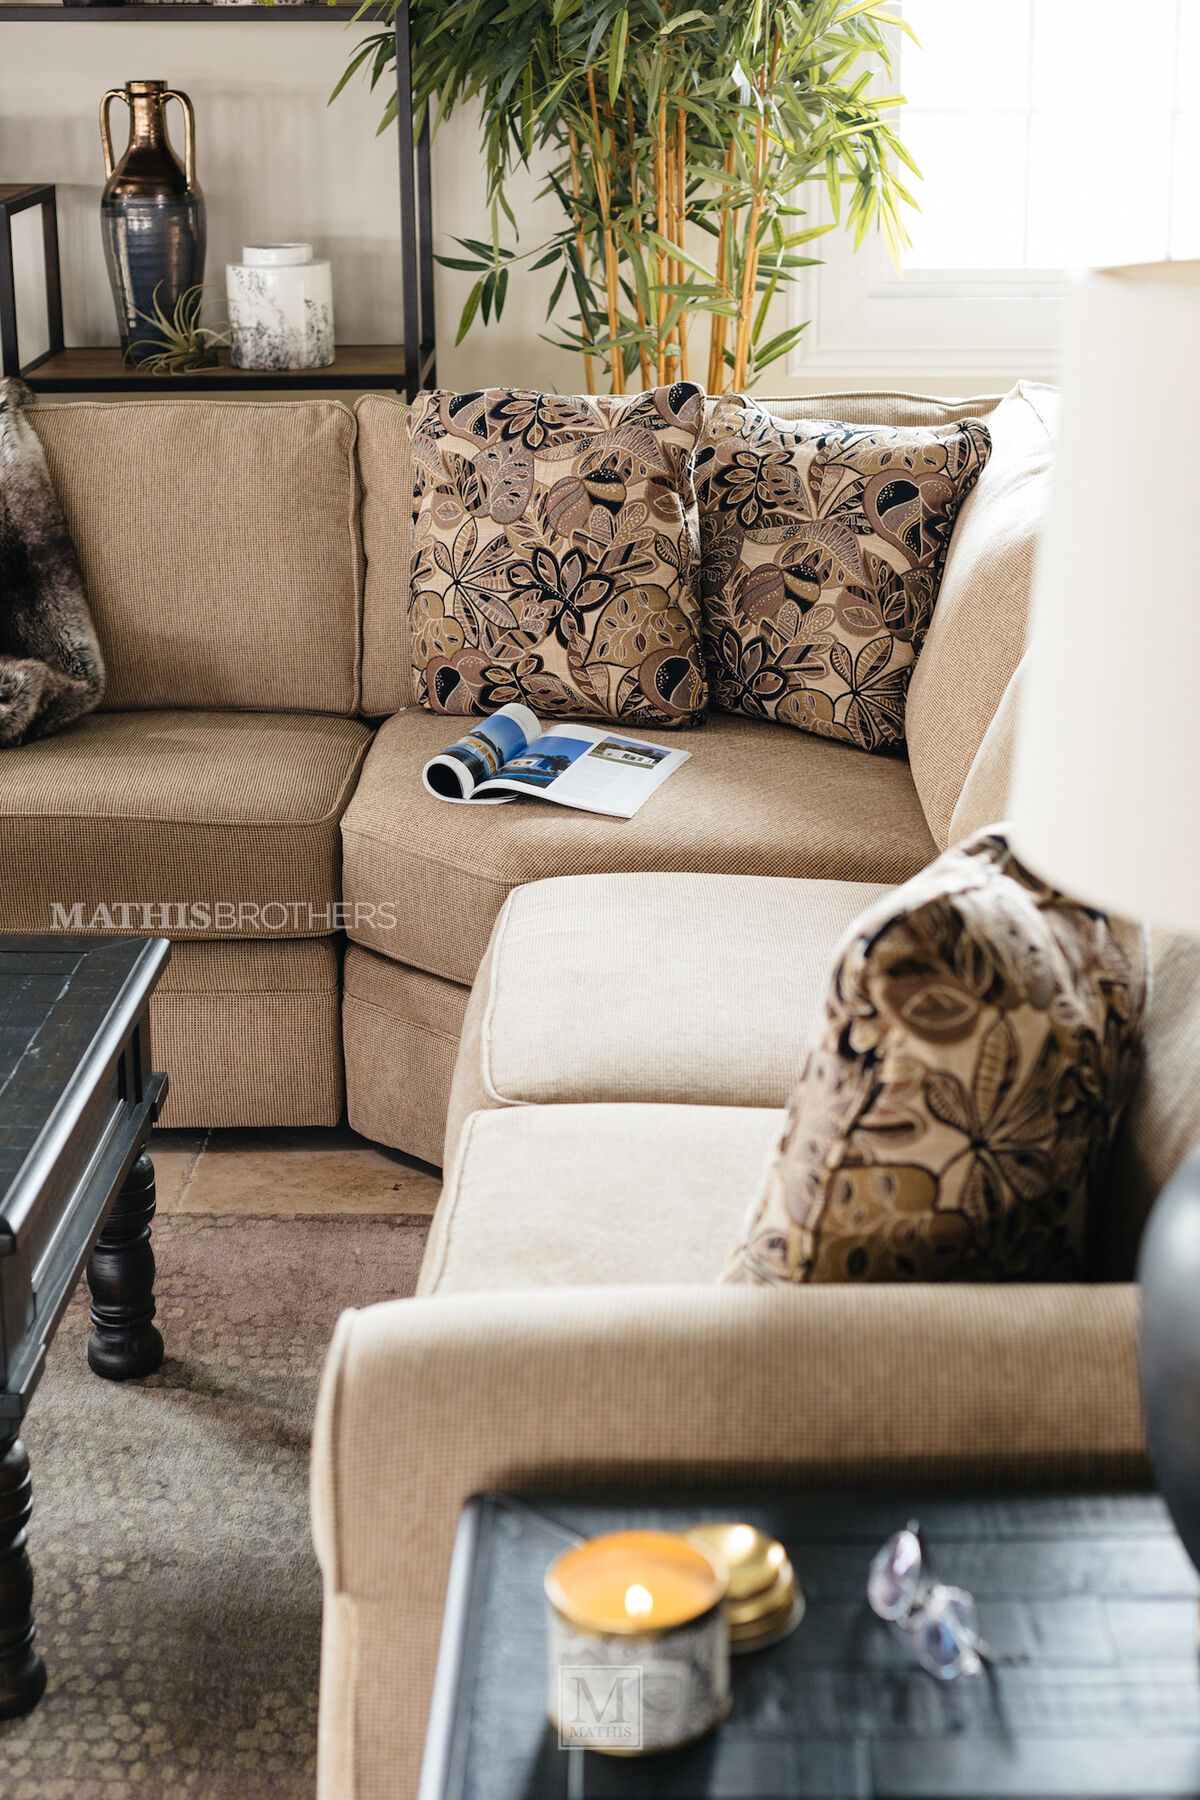 Broyhill Veronica Sand Sectional video : broyhill veronica sectional - Sectionals, Sofas & Couches